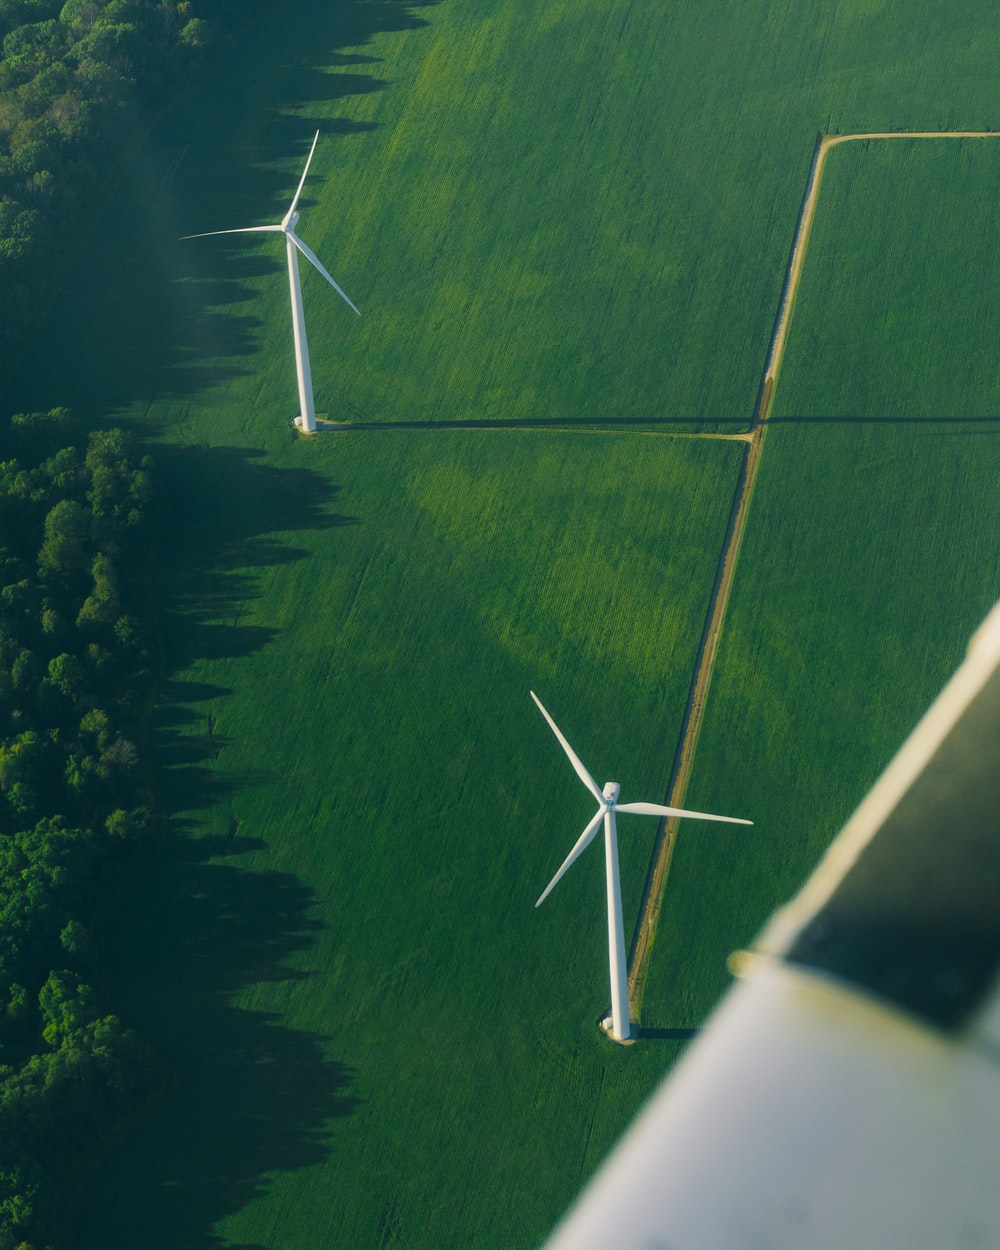 white wind turbines on green grass field during daytime